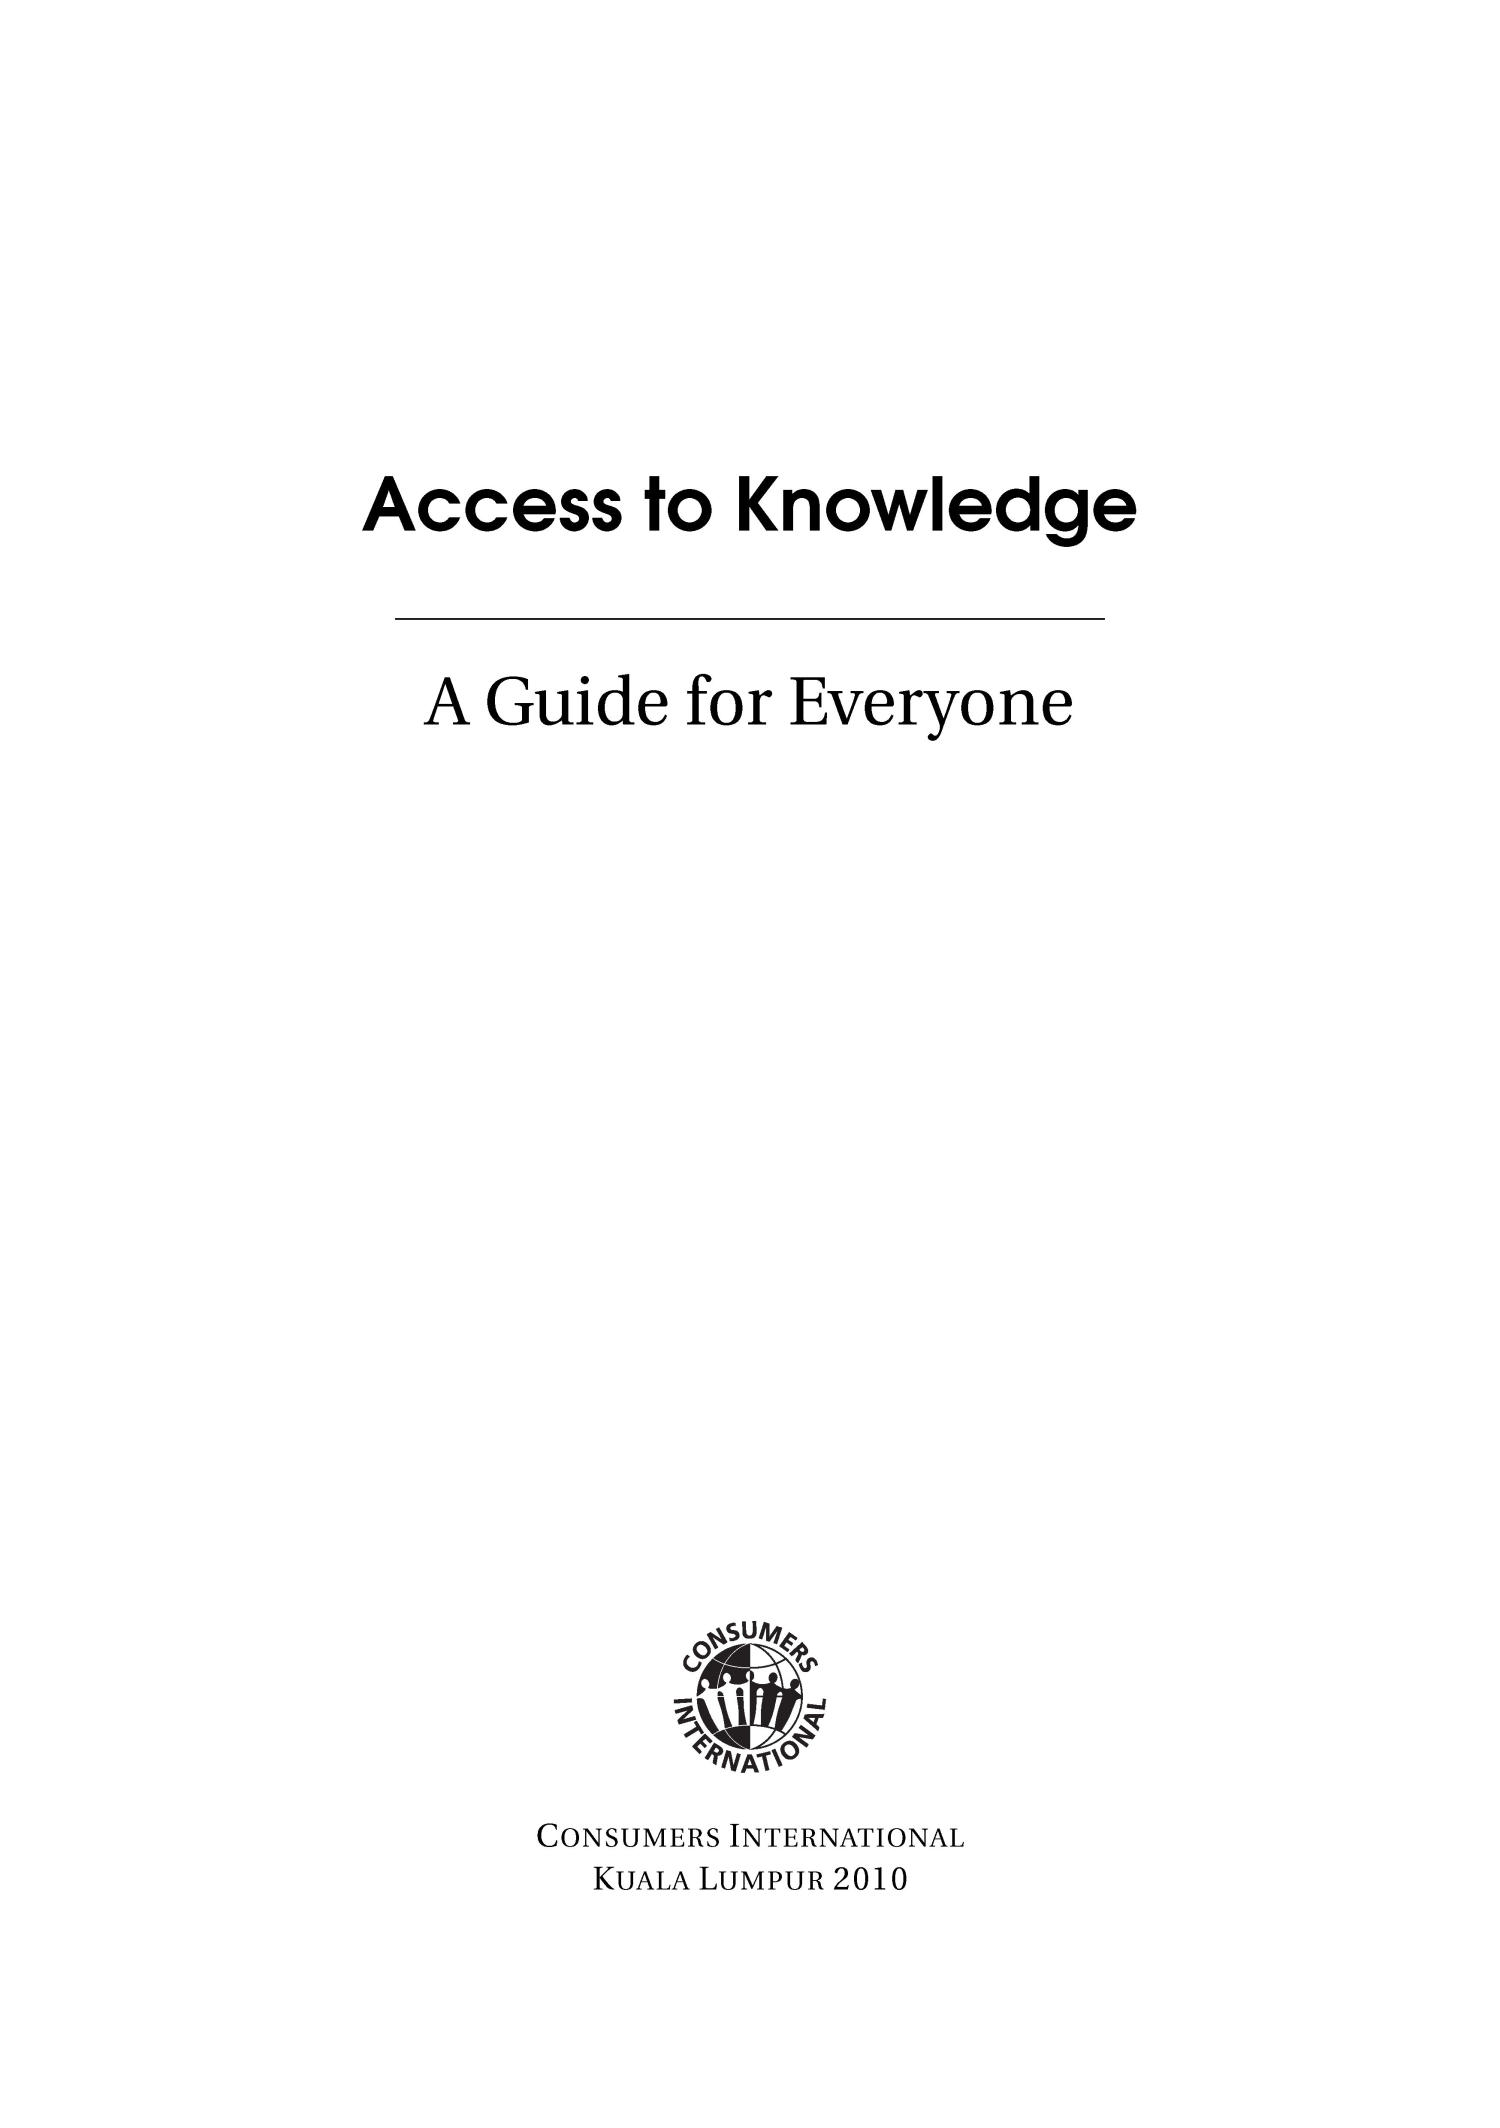 Access to Knowledge: a guide for everyone                                                                                                      Title Page